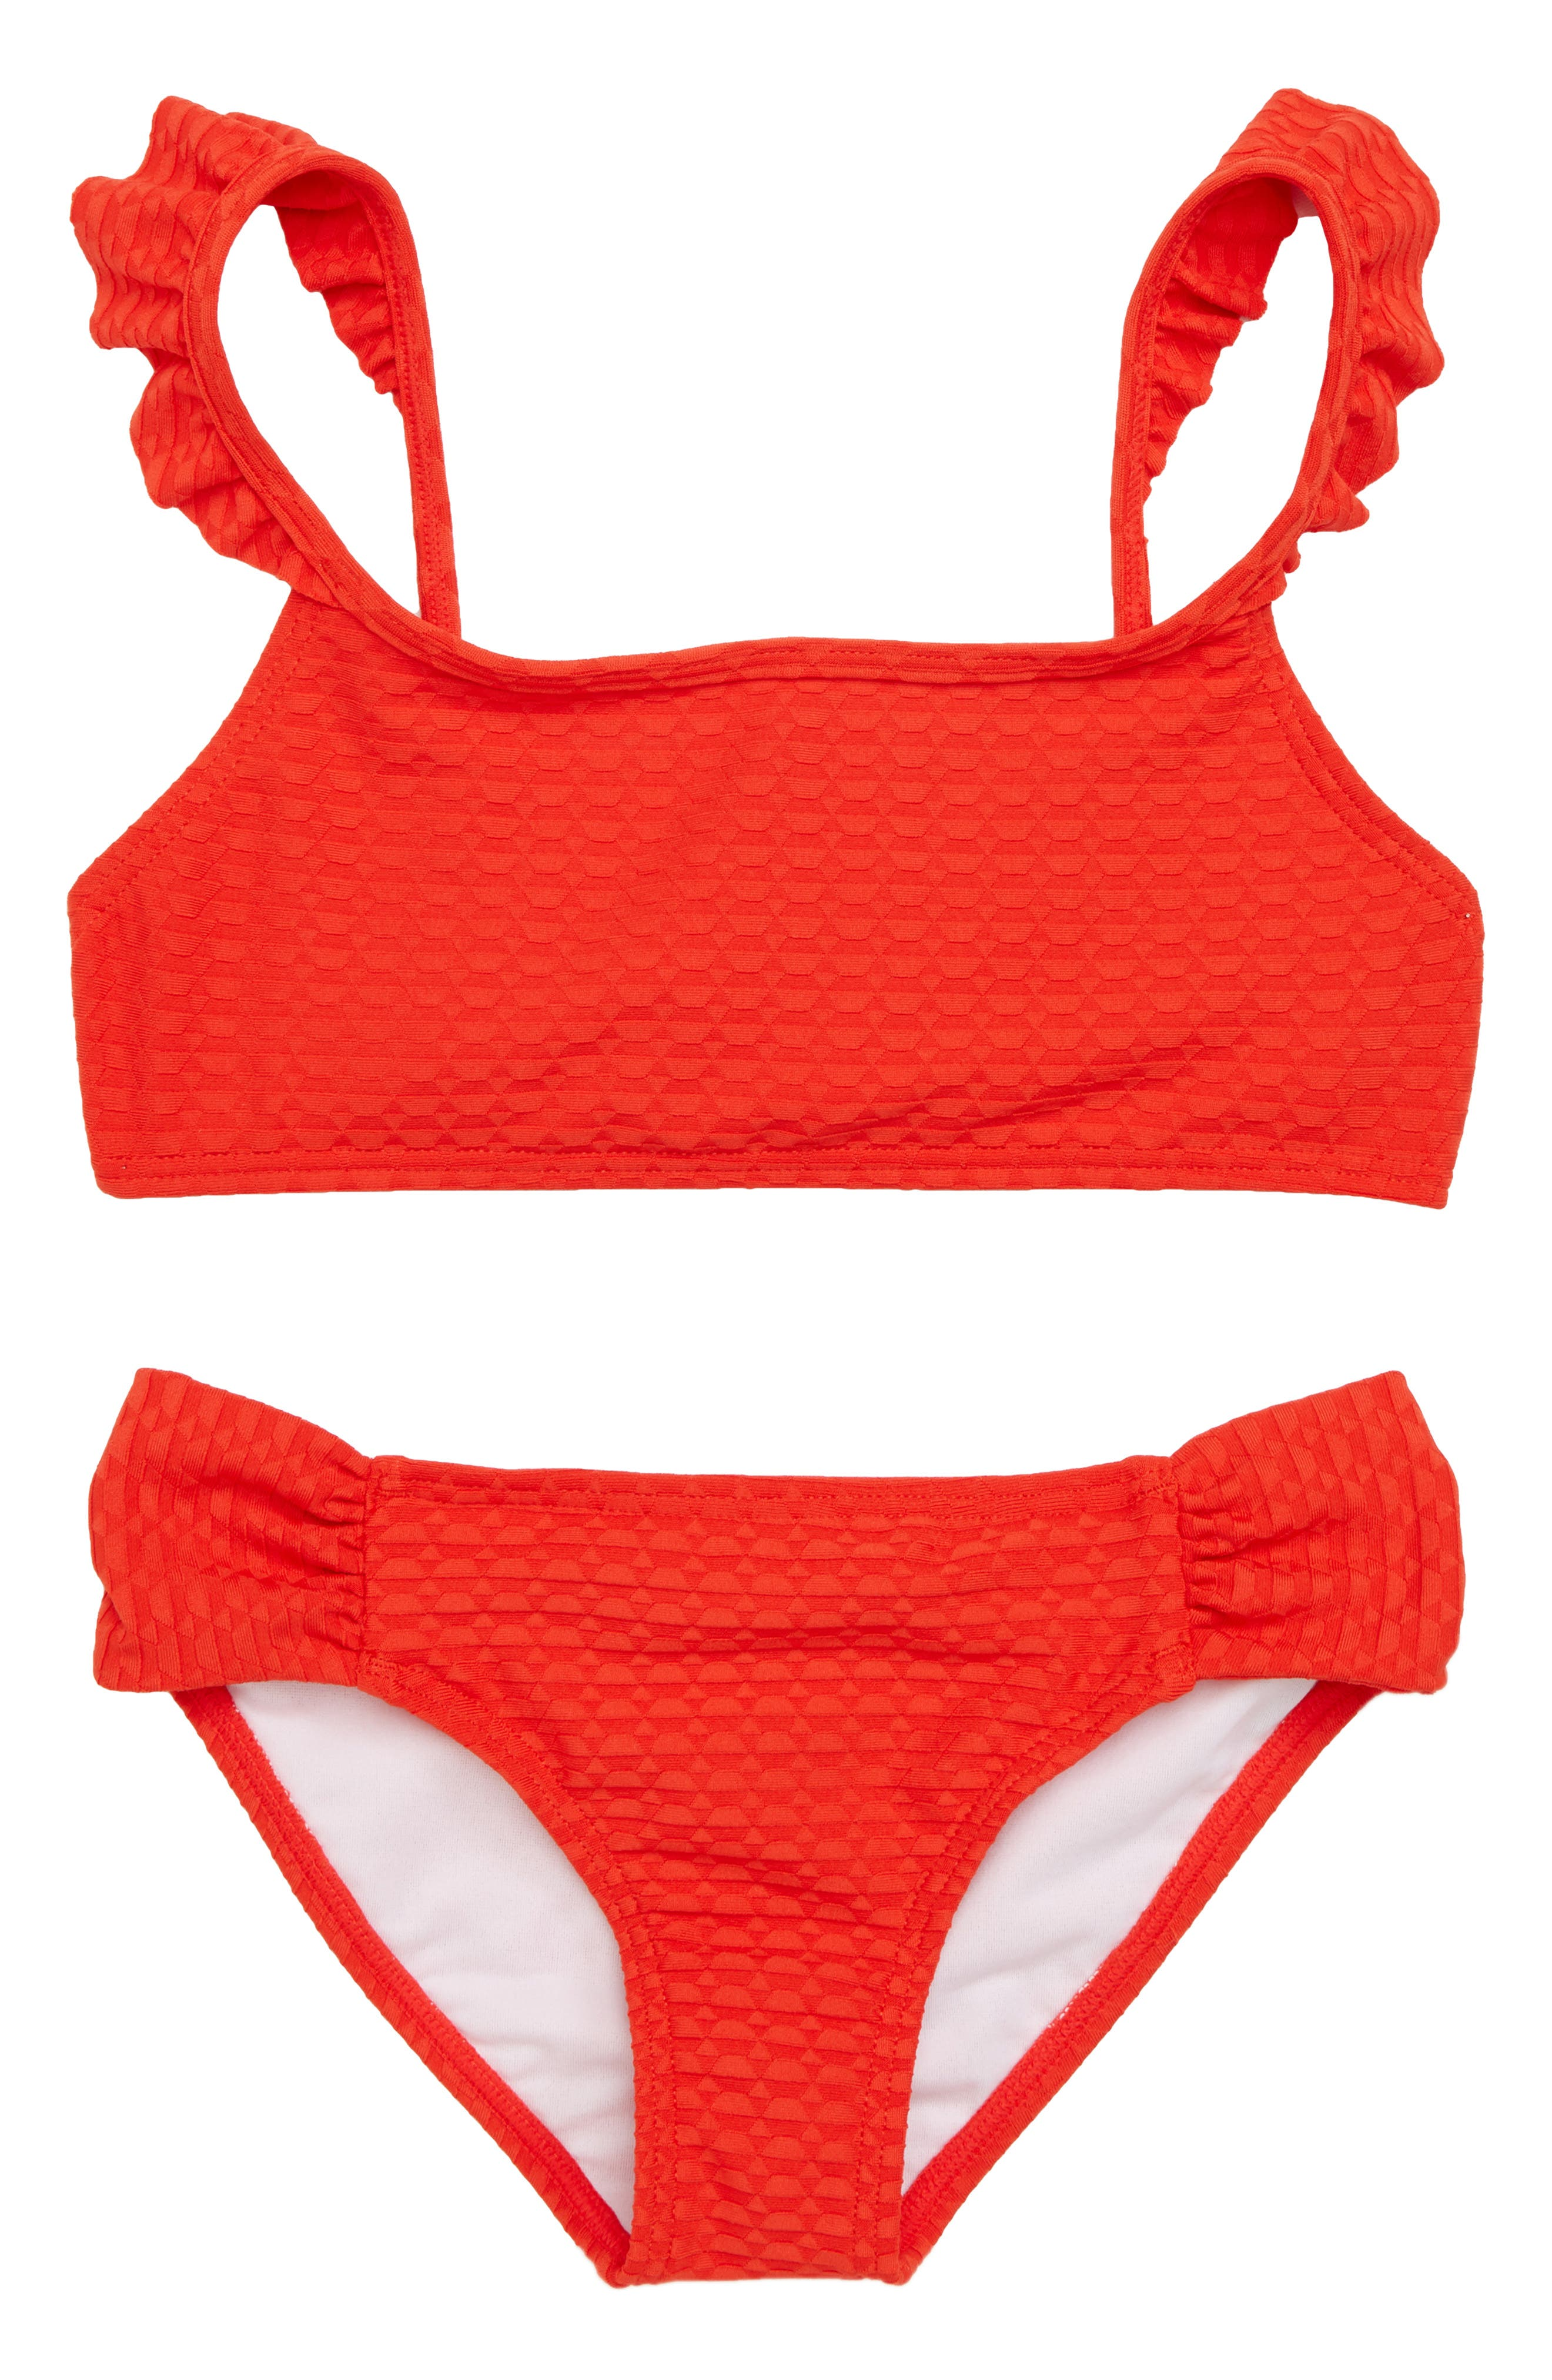 Makin Shapes Two-Piece Swimsuit,                         Main,                         color, Poppy